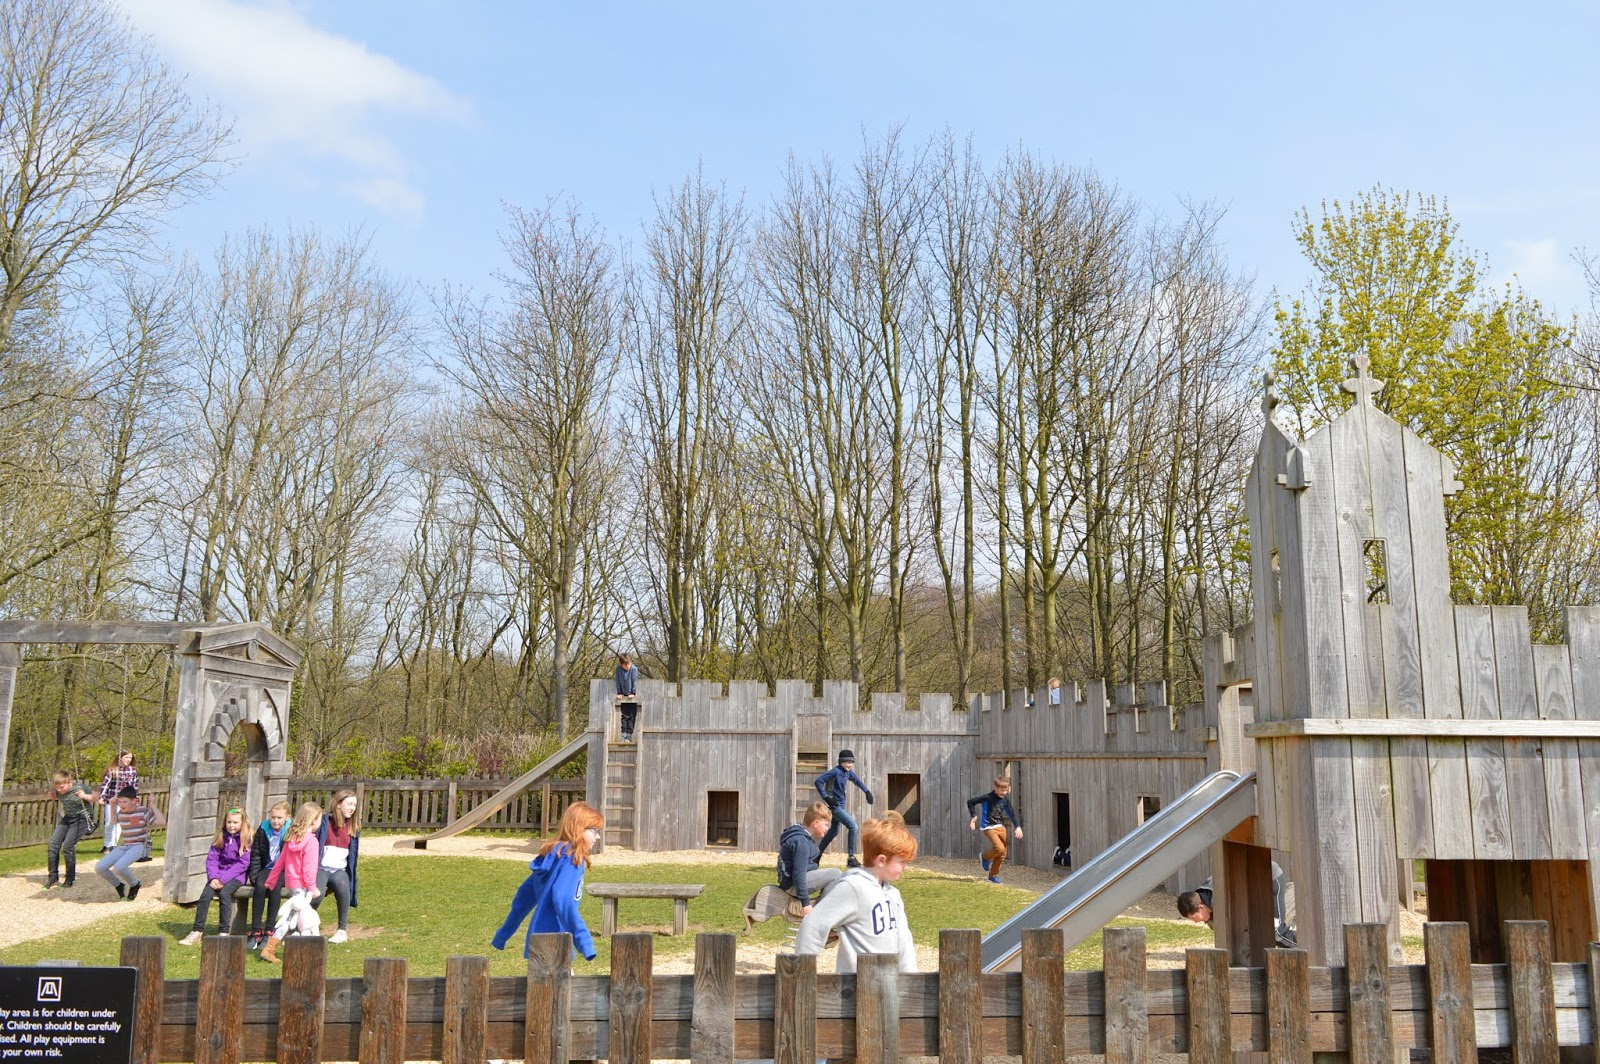 A Review of Darwin Forest & The Peak District with Tweens  - Bolsover castle play park